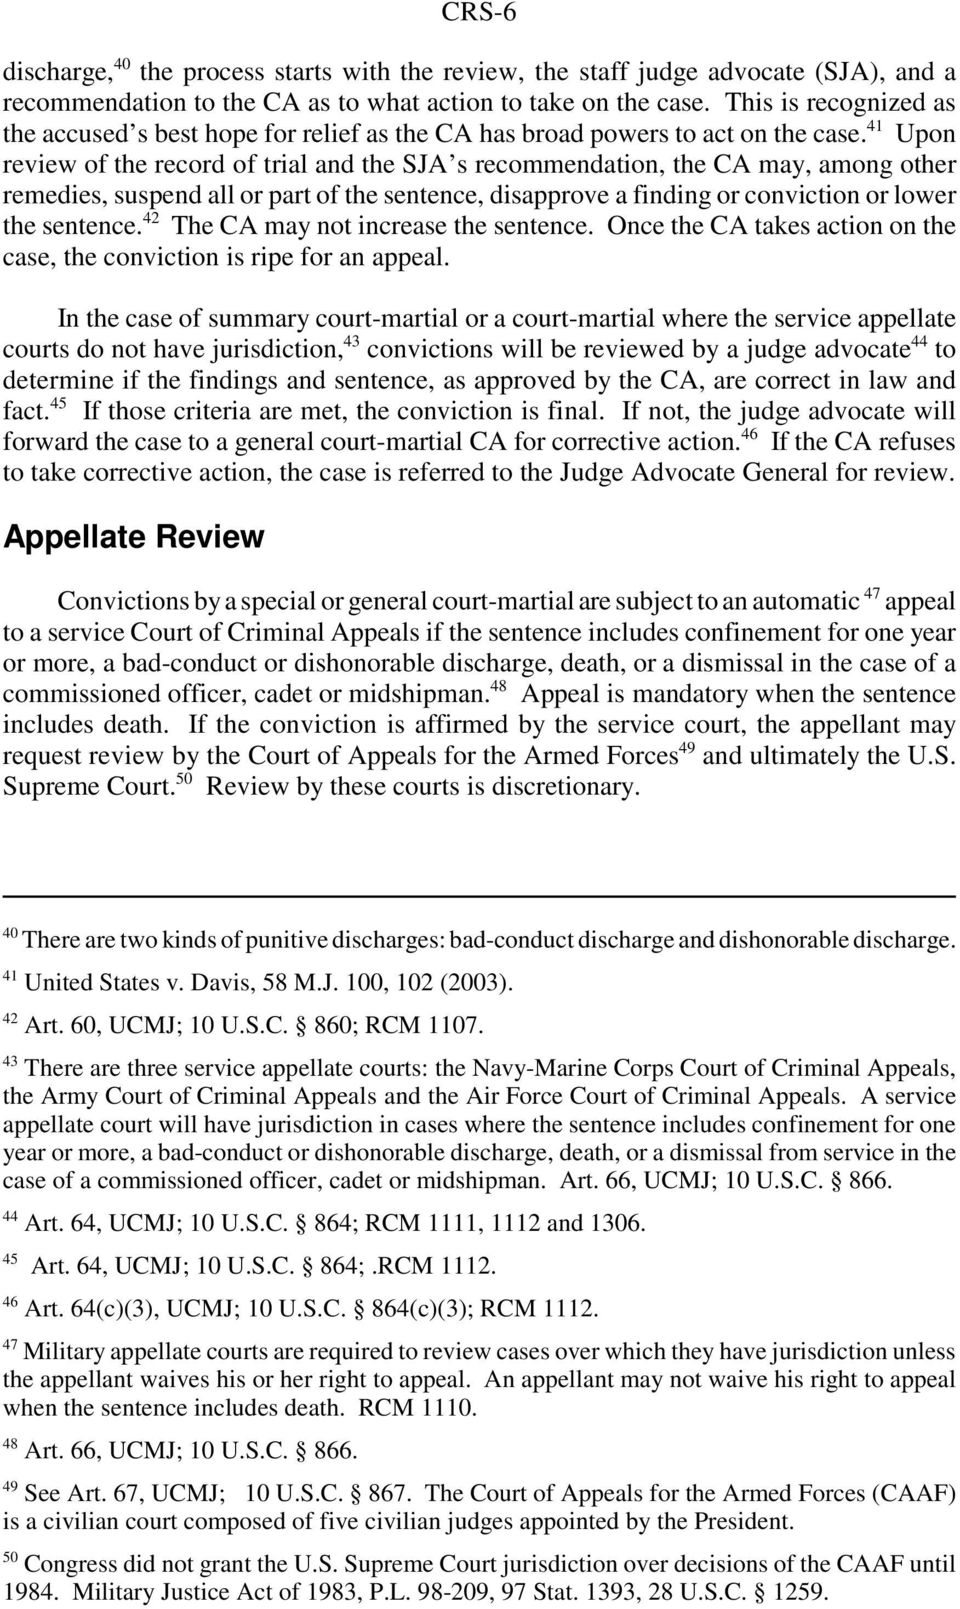 41 Upon review of the record of trial and the SJA s recommendation, the CA may, among other remedies, suspend all or part of the sentence, disapprove a finding or conviction or lower the sentence.